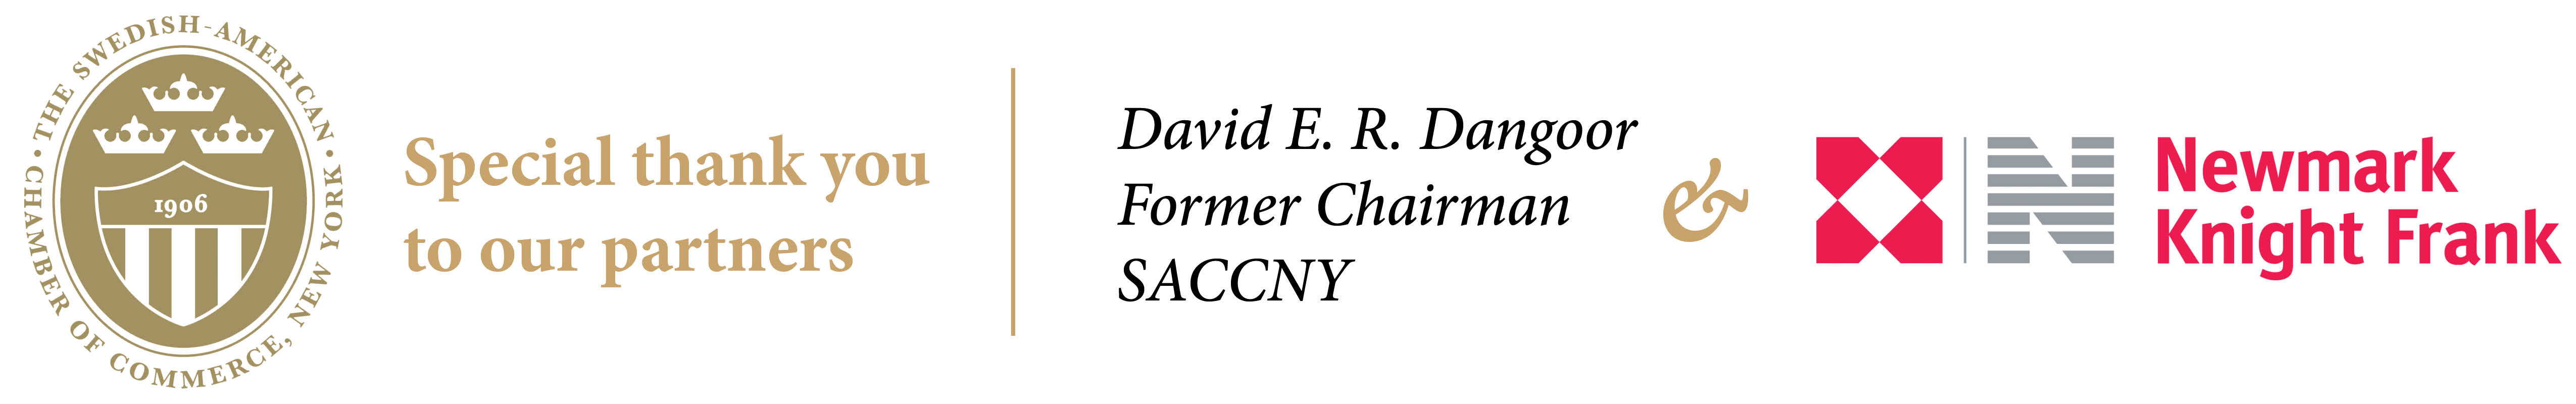 Special thank you to our partners, David E. R. Dangoor Former Chairman SACCNY & Newmark Knight Frank